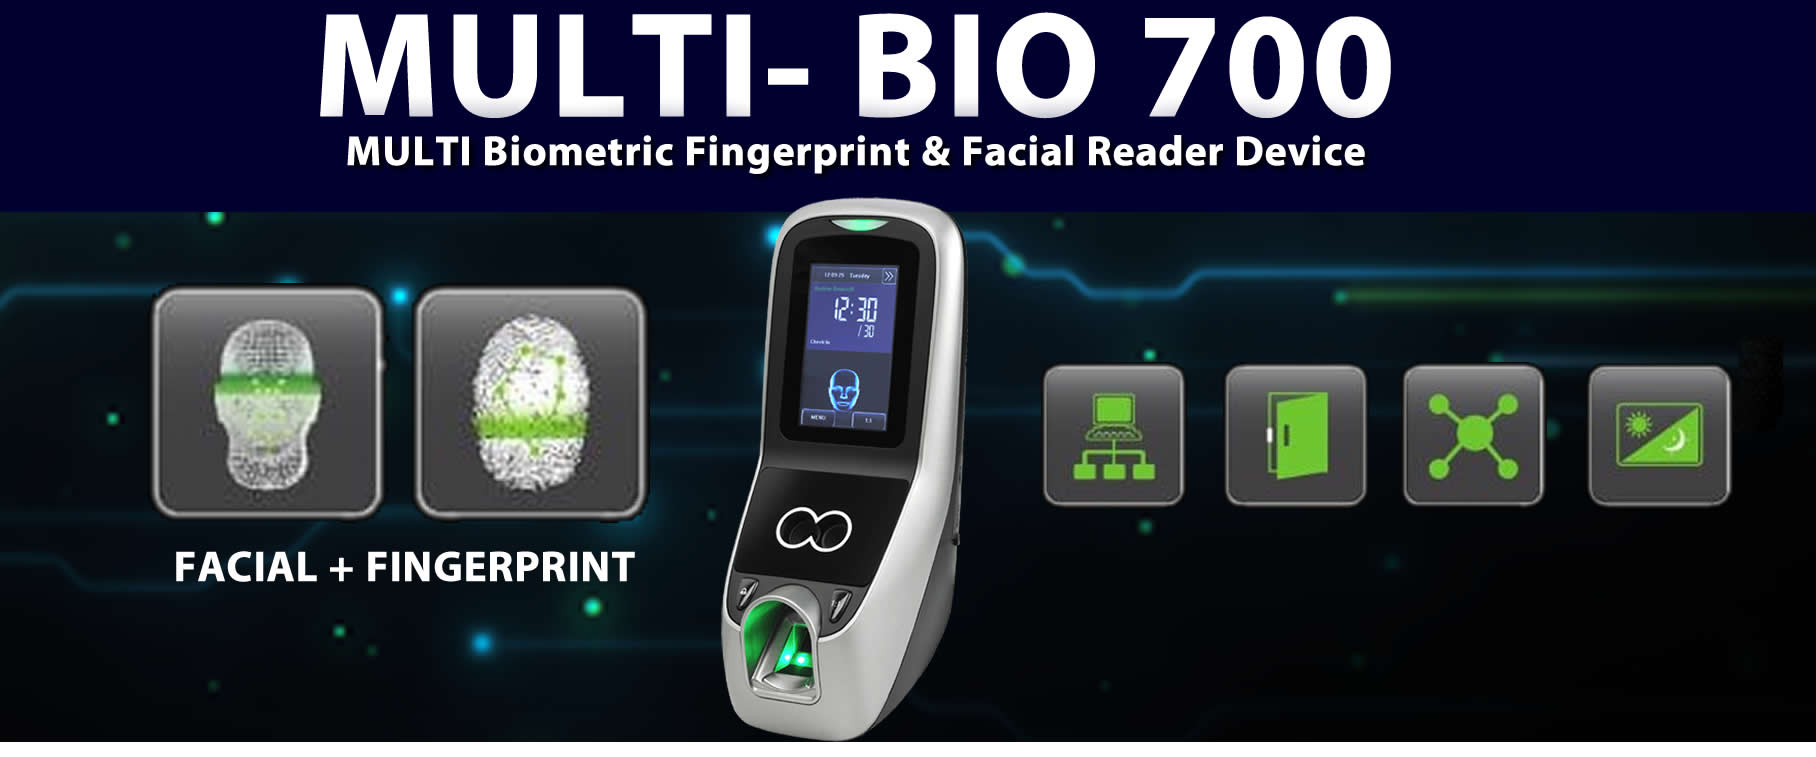 multi biometric Fingerprint reader device